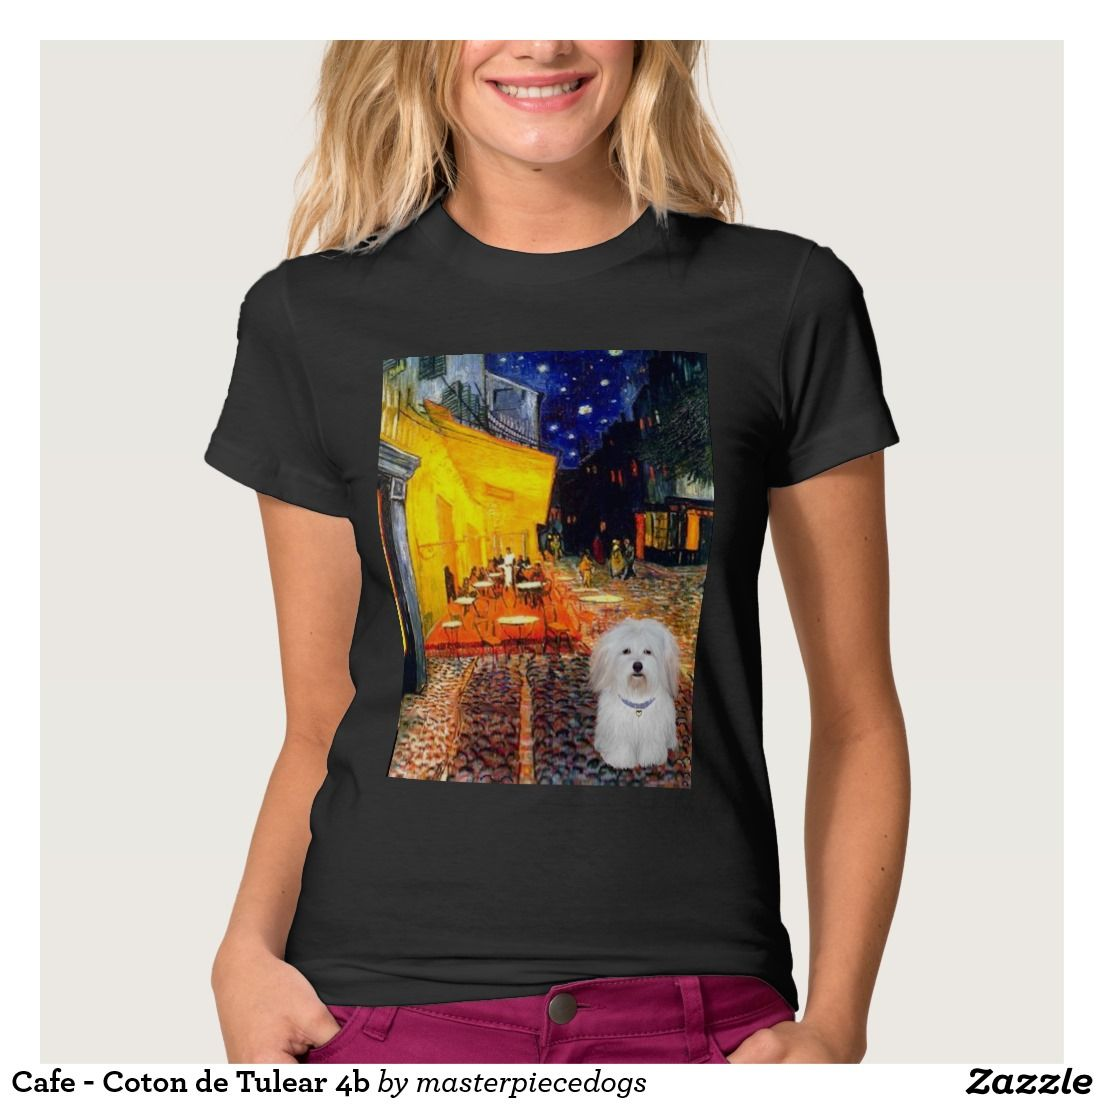 Create your own designs amp sell your design online shirts zazzle - Create Your Own Designs Amp Sell Your Design Online Shirts Zazzle 11